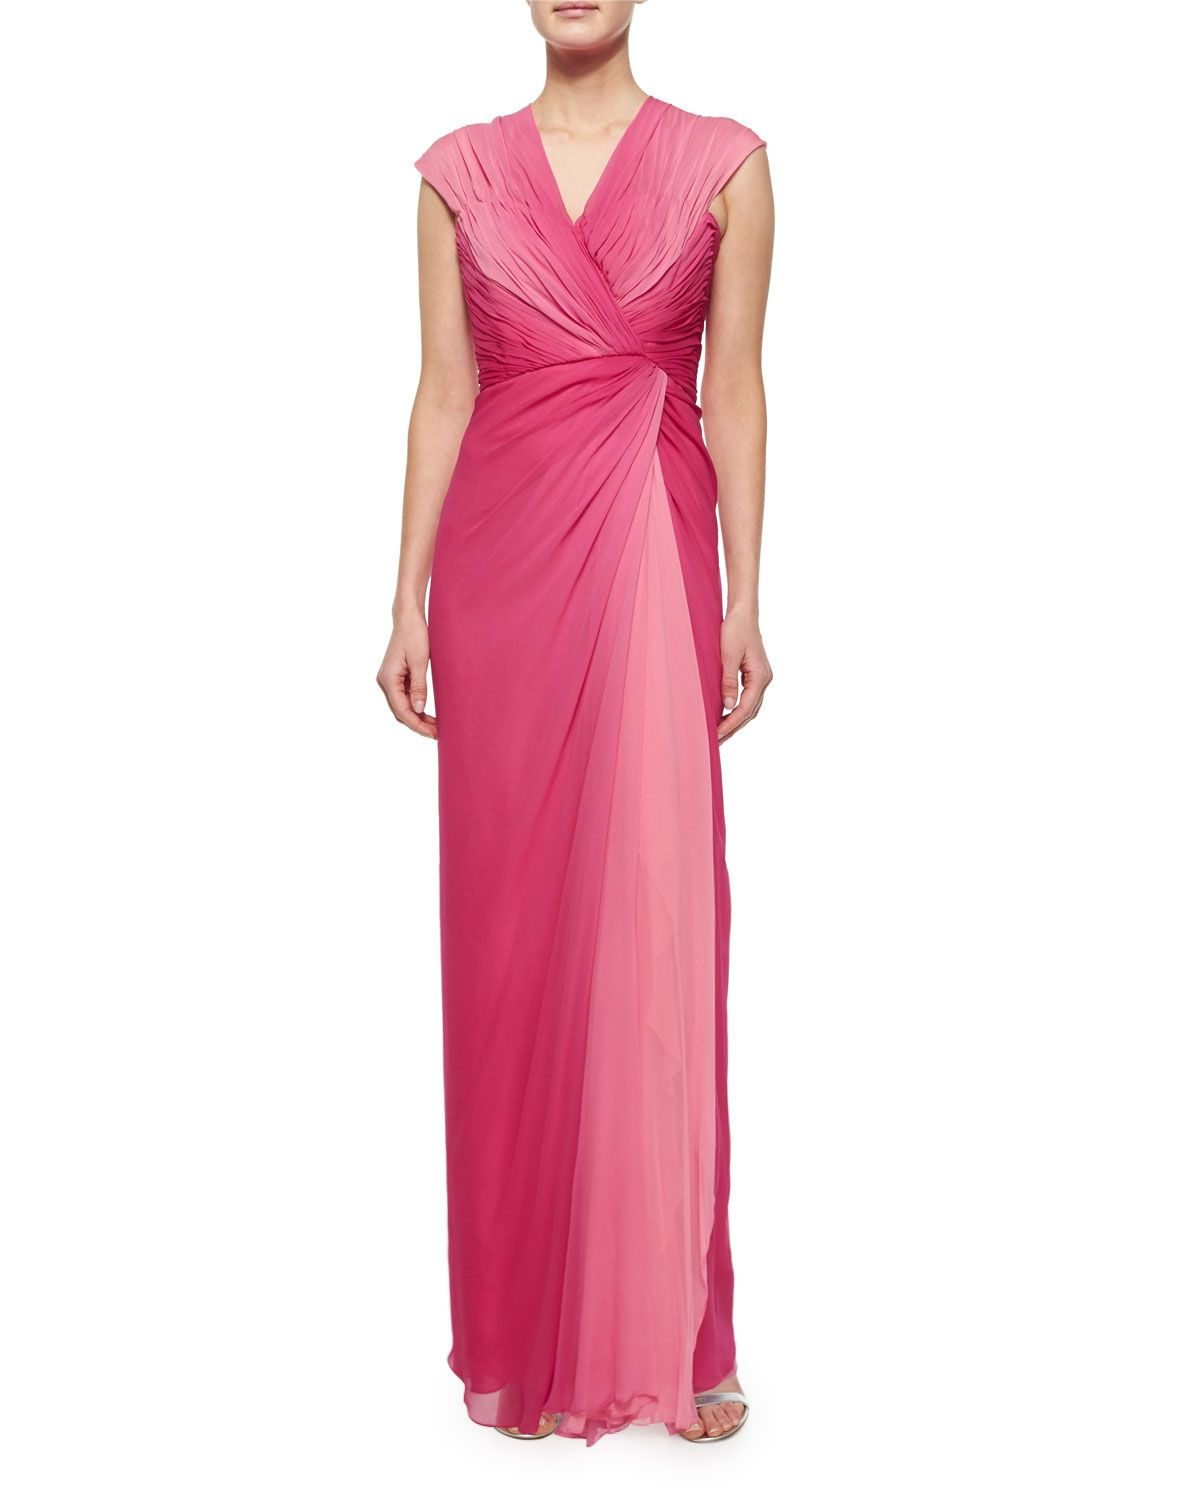 Cap-Sleeve Ruched Ombre Gown, Rose, Size: 16, pink - Melinda Eng ...